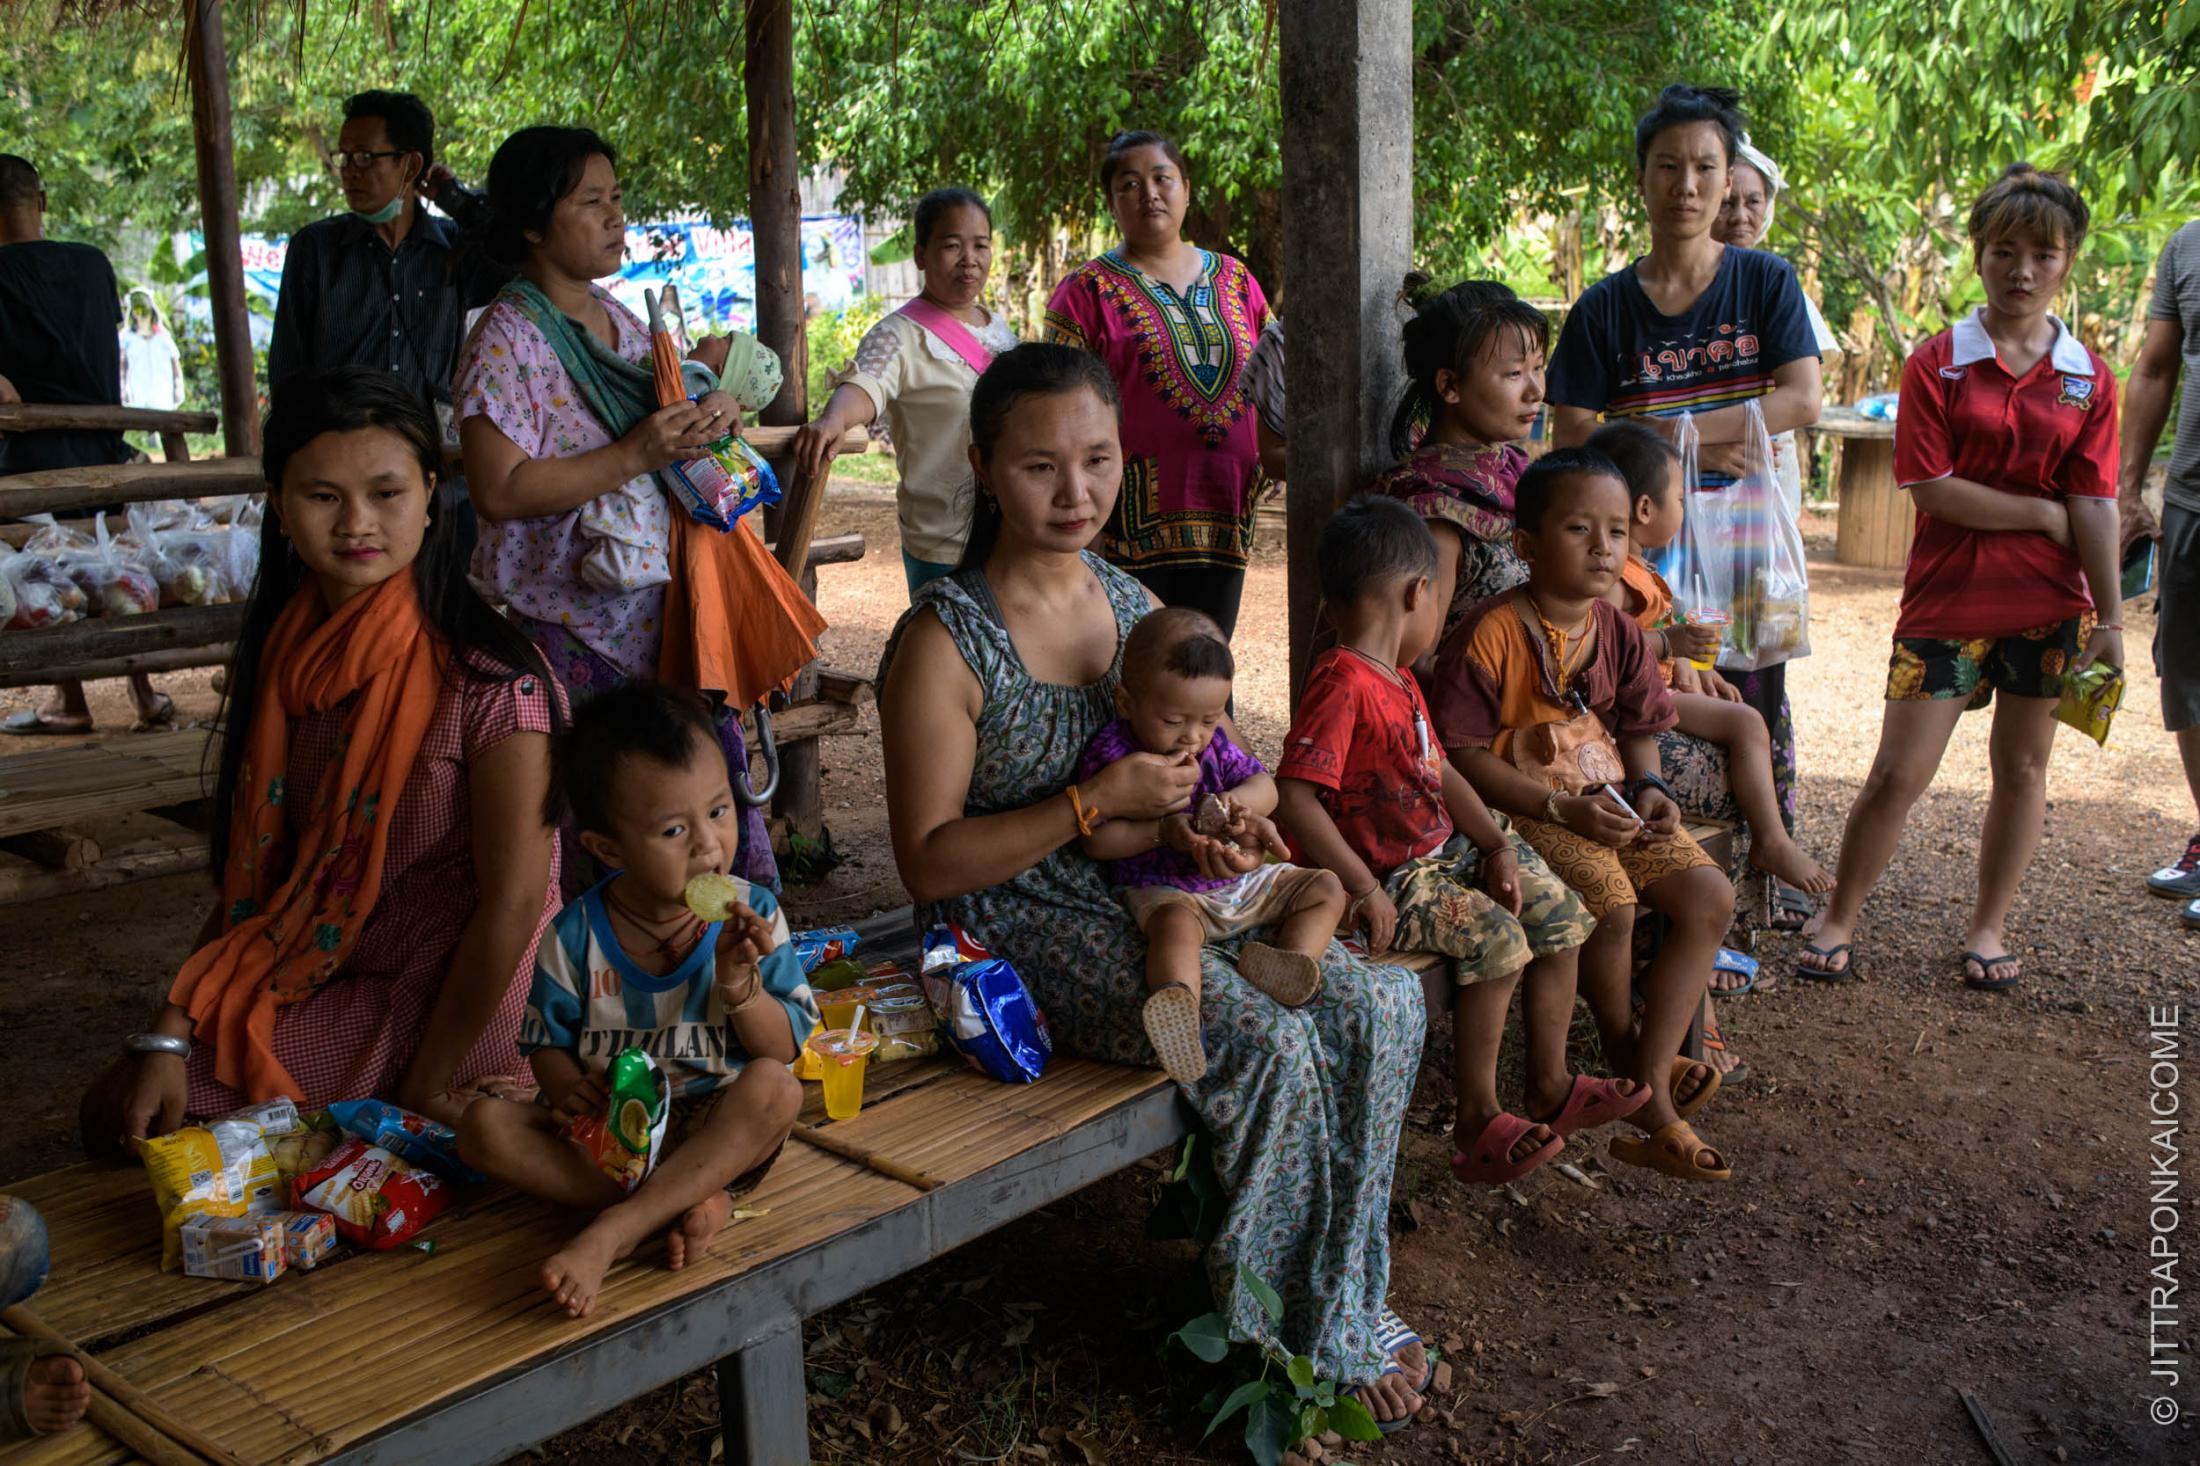 In a tourist hill tribe village in Mae Tang, multiple ethnics hill tribes including Karen Long Neck are waiting to received food handouts. Chiang Mai, Thailand.